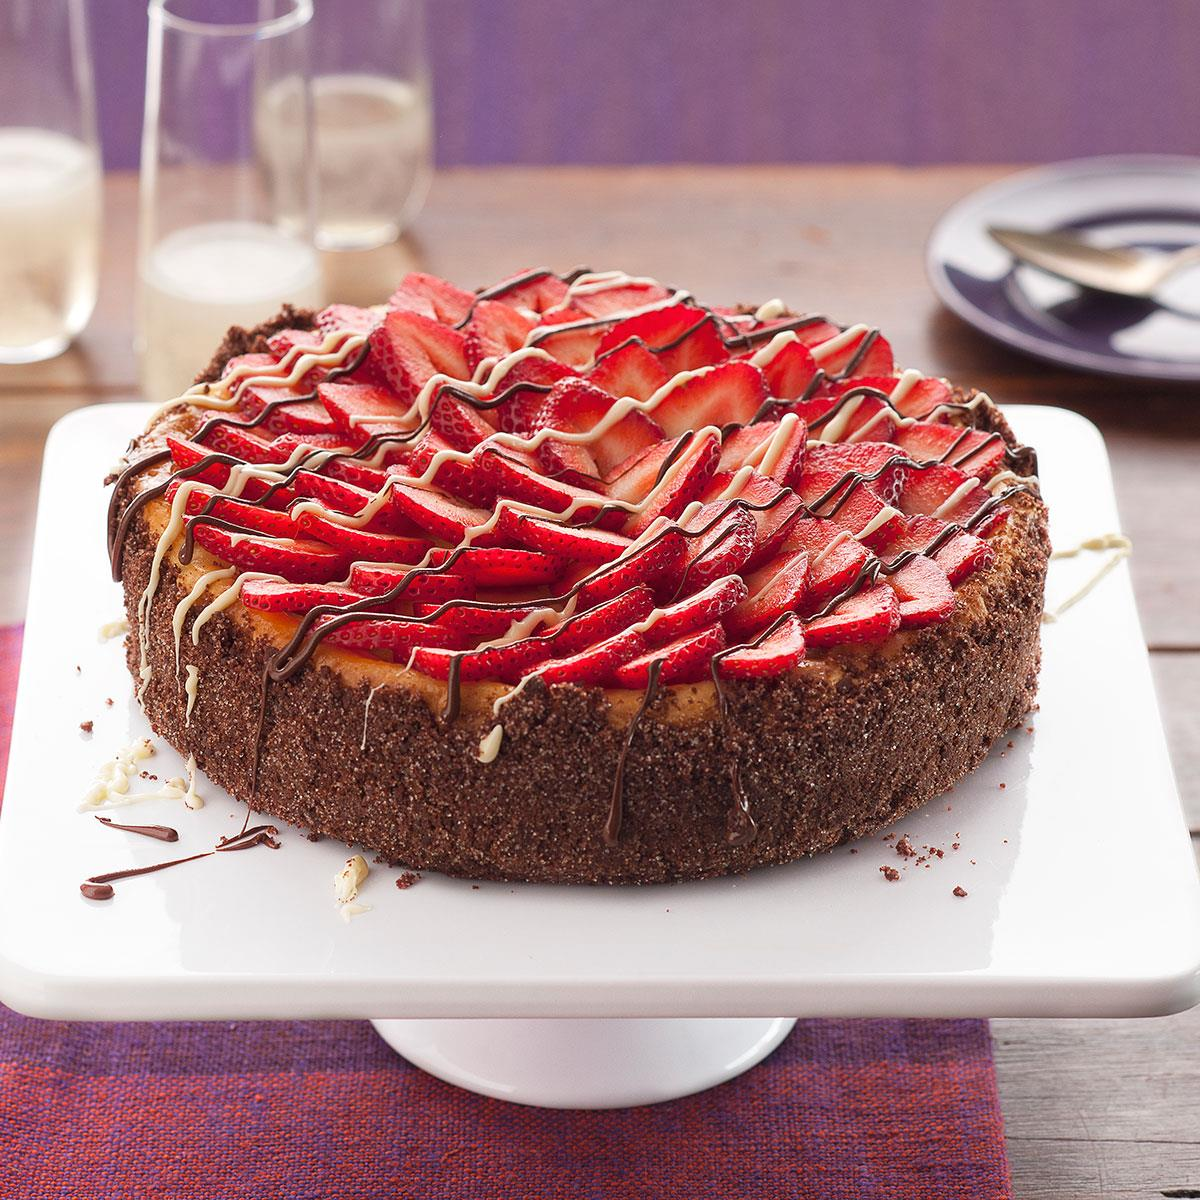 Astonishing Strawberries And Champagne Cheesecake Recipe Taste Of Home Funny Birthday Cards Online Barepcheapnameinfo